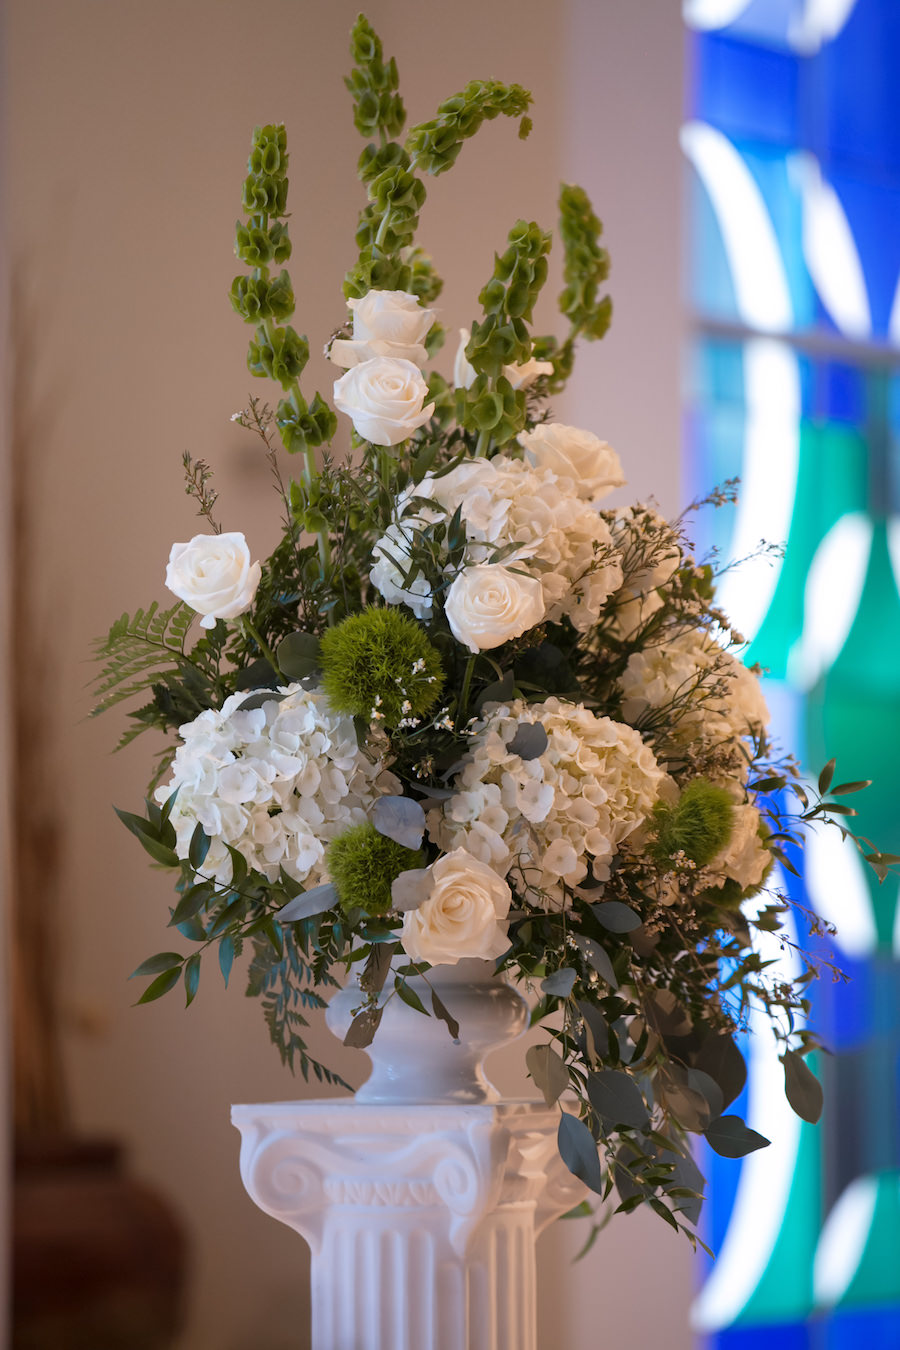 Tall White Rose, Hydrangea, and Greenery Wedding Aisle Ceremony Decor Flowers by Tampa Bay Wedding Florist Northside Florist